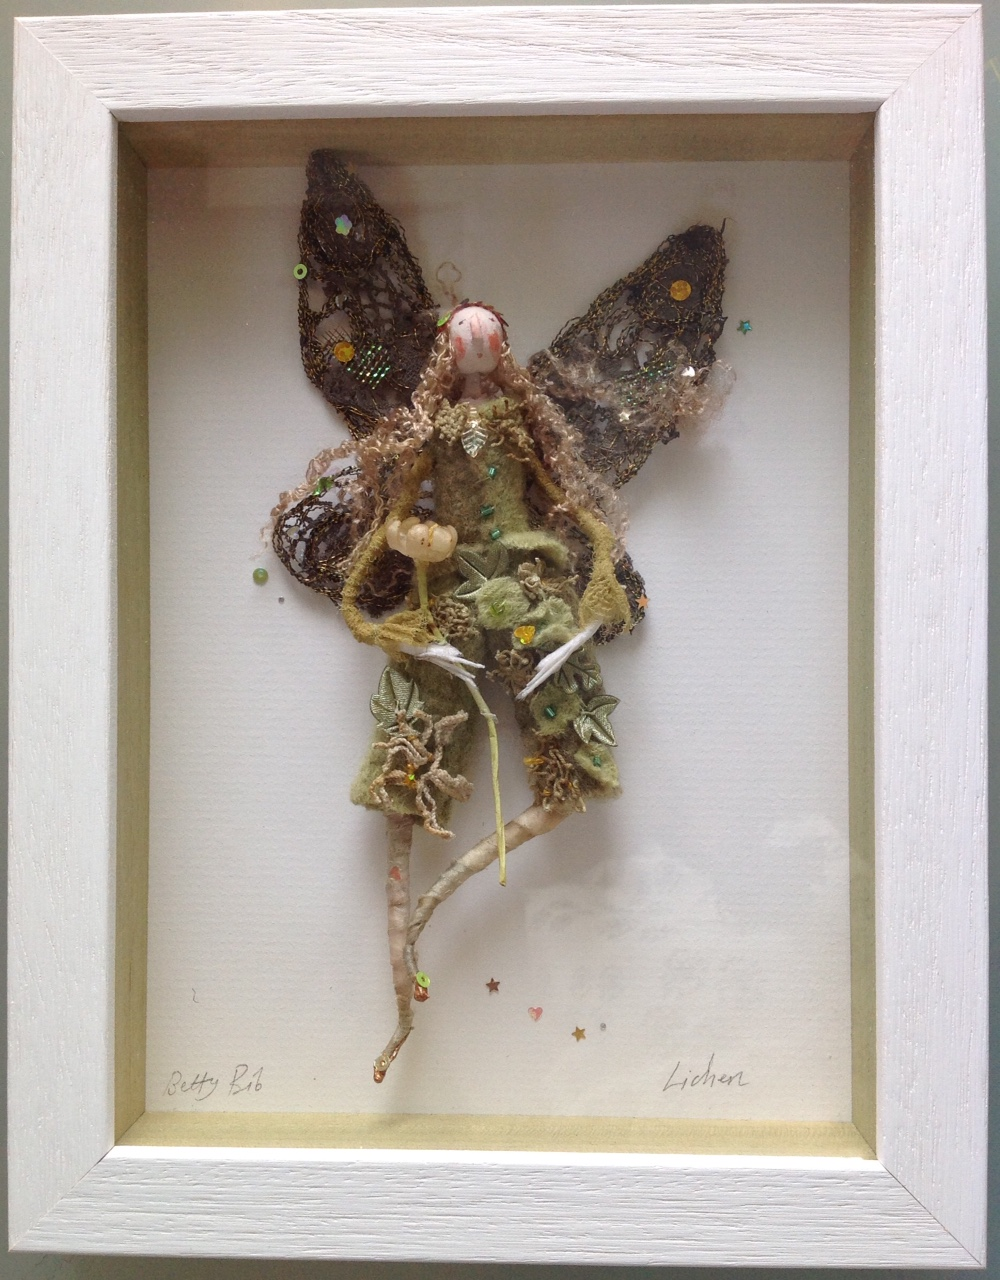 LICHEN; a 23x17.5 box framed fairy. Lichen is dressed in hand dyed ( with red onion ) clothes , trimmed with vintage lace. She has embroidered wings and is carrying a vintage wax flower. please e mail me if you would like to see her in more detail. £95 plus £3.50 postage.